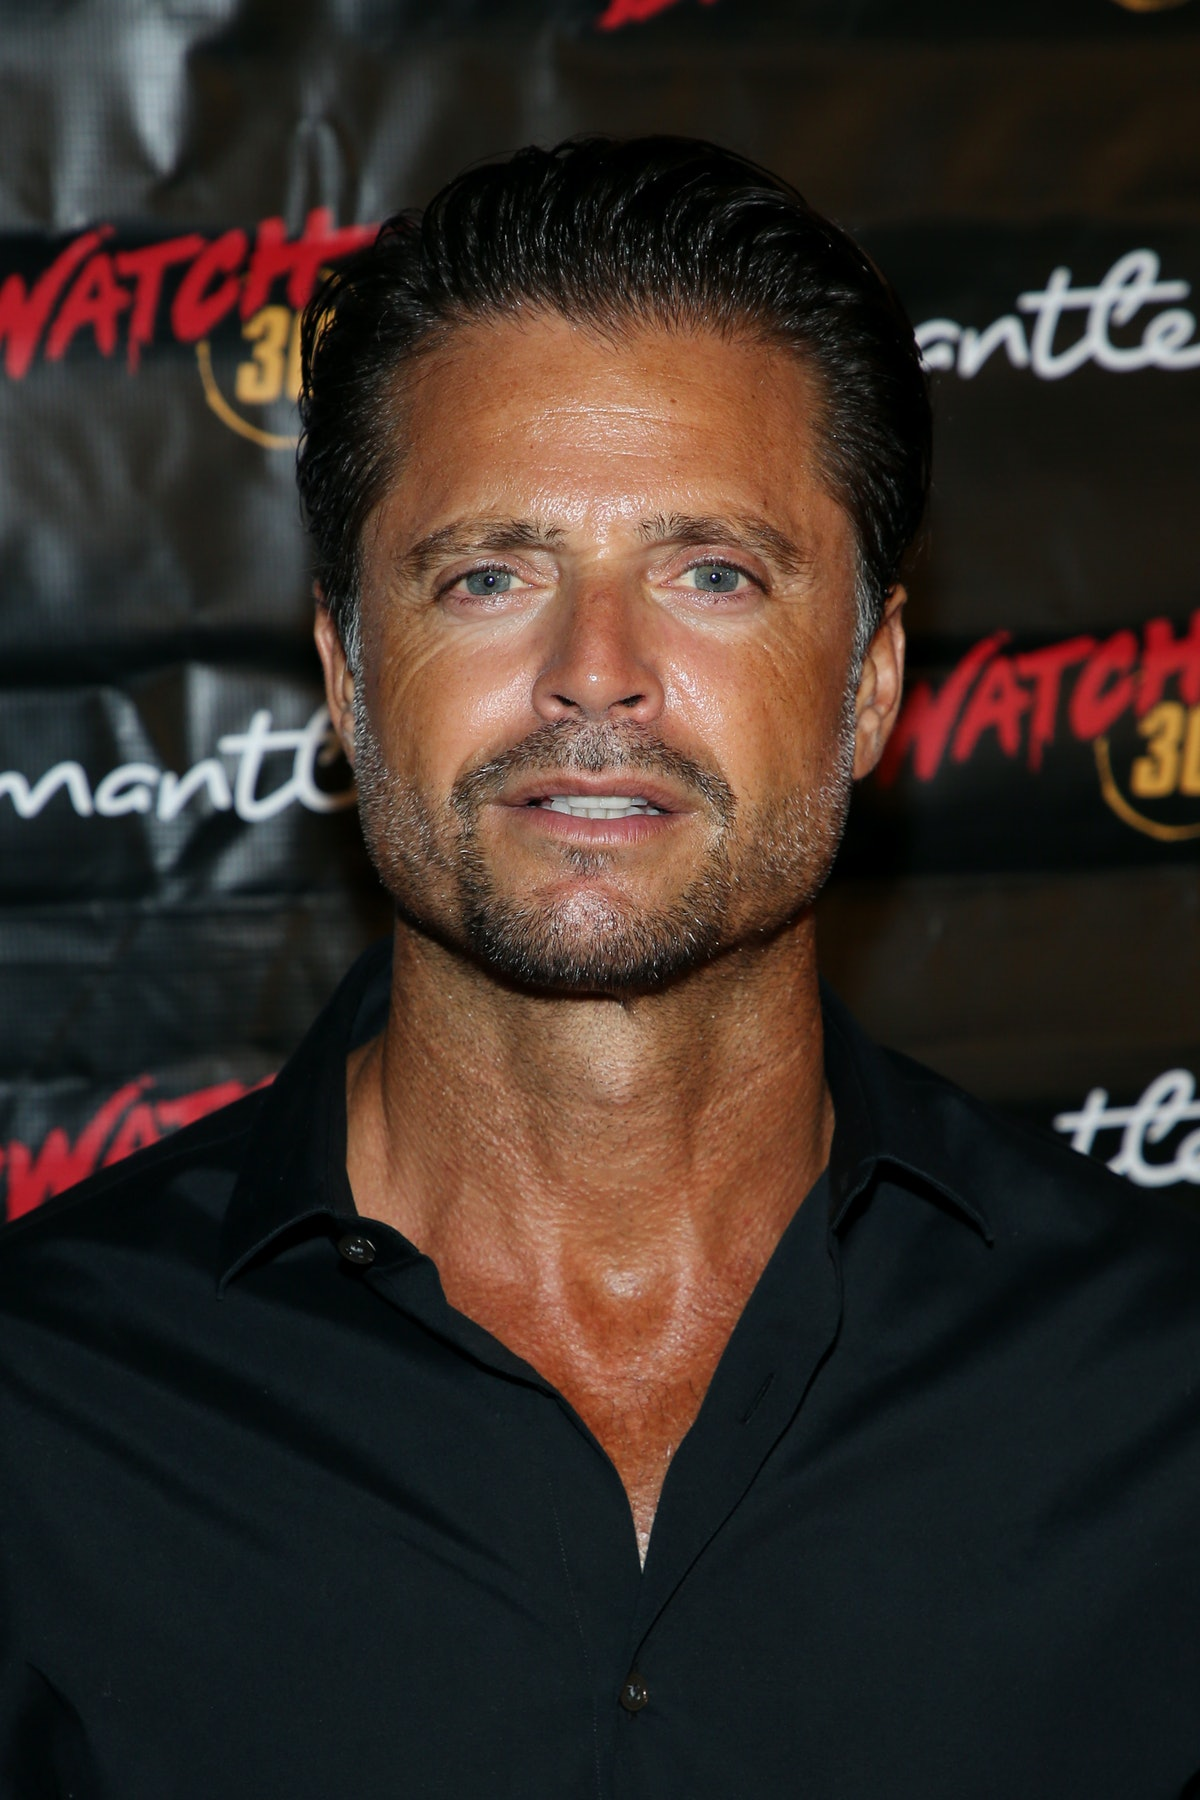 """SANTA MONICA, CALIFORNIA - SEPTEMBER 24:  David Charvet attends the 30th anniversary of """"Baywatch"""" at the Viceroy Hotel on September 24, 2019 in Santa Monica, California. (Photo by Phillip Faraone/WireImage)"""